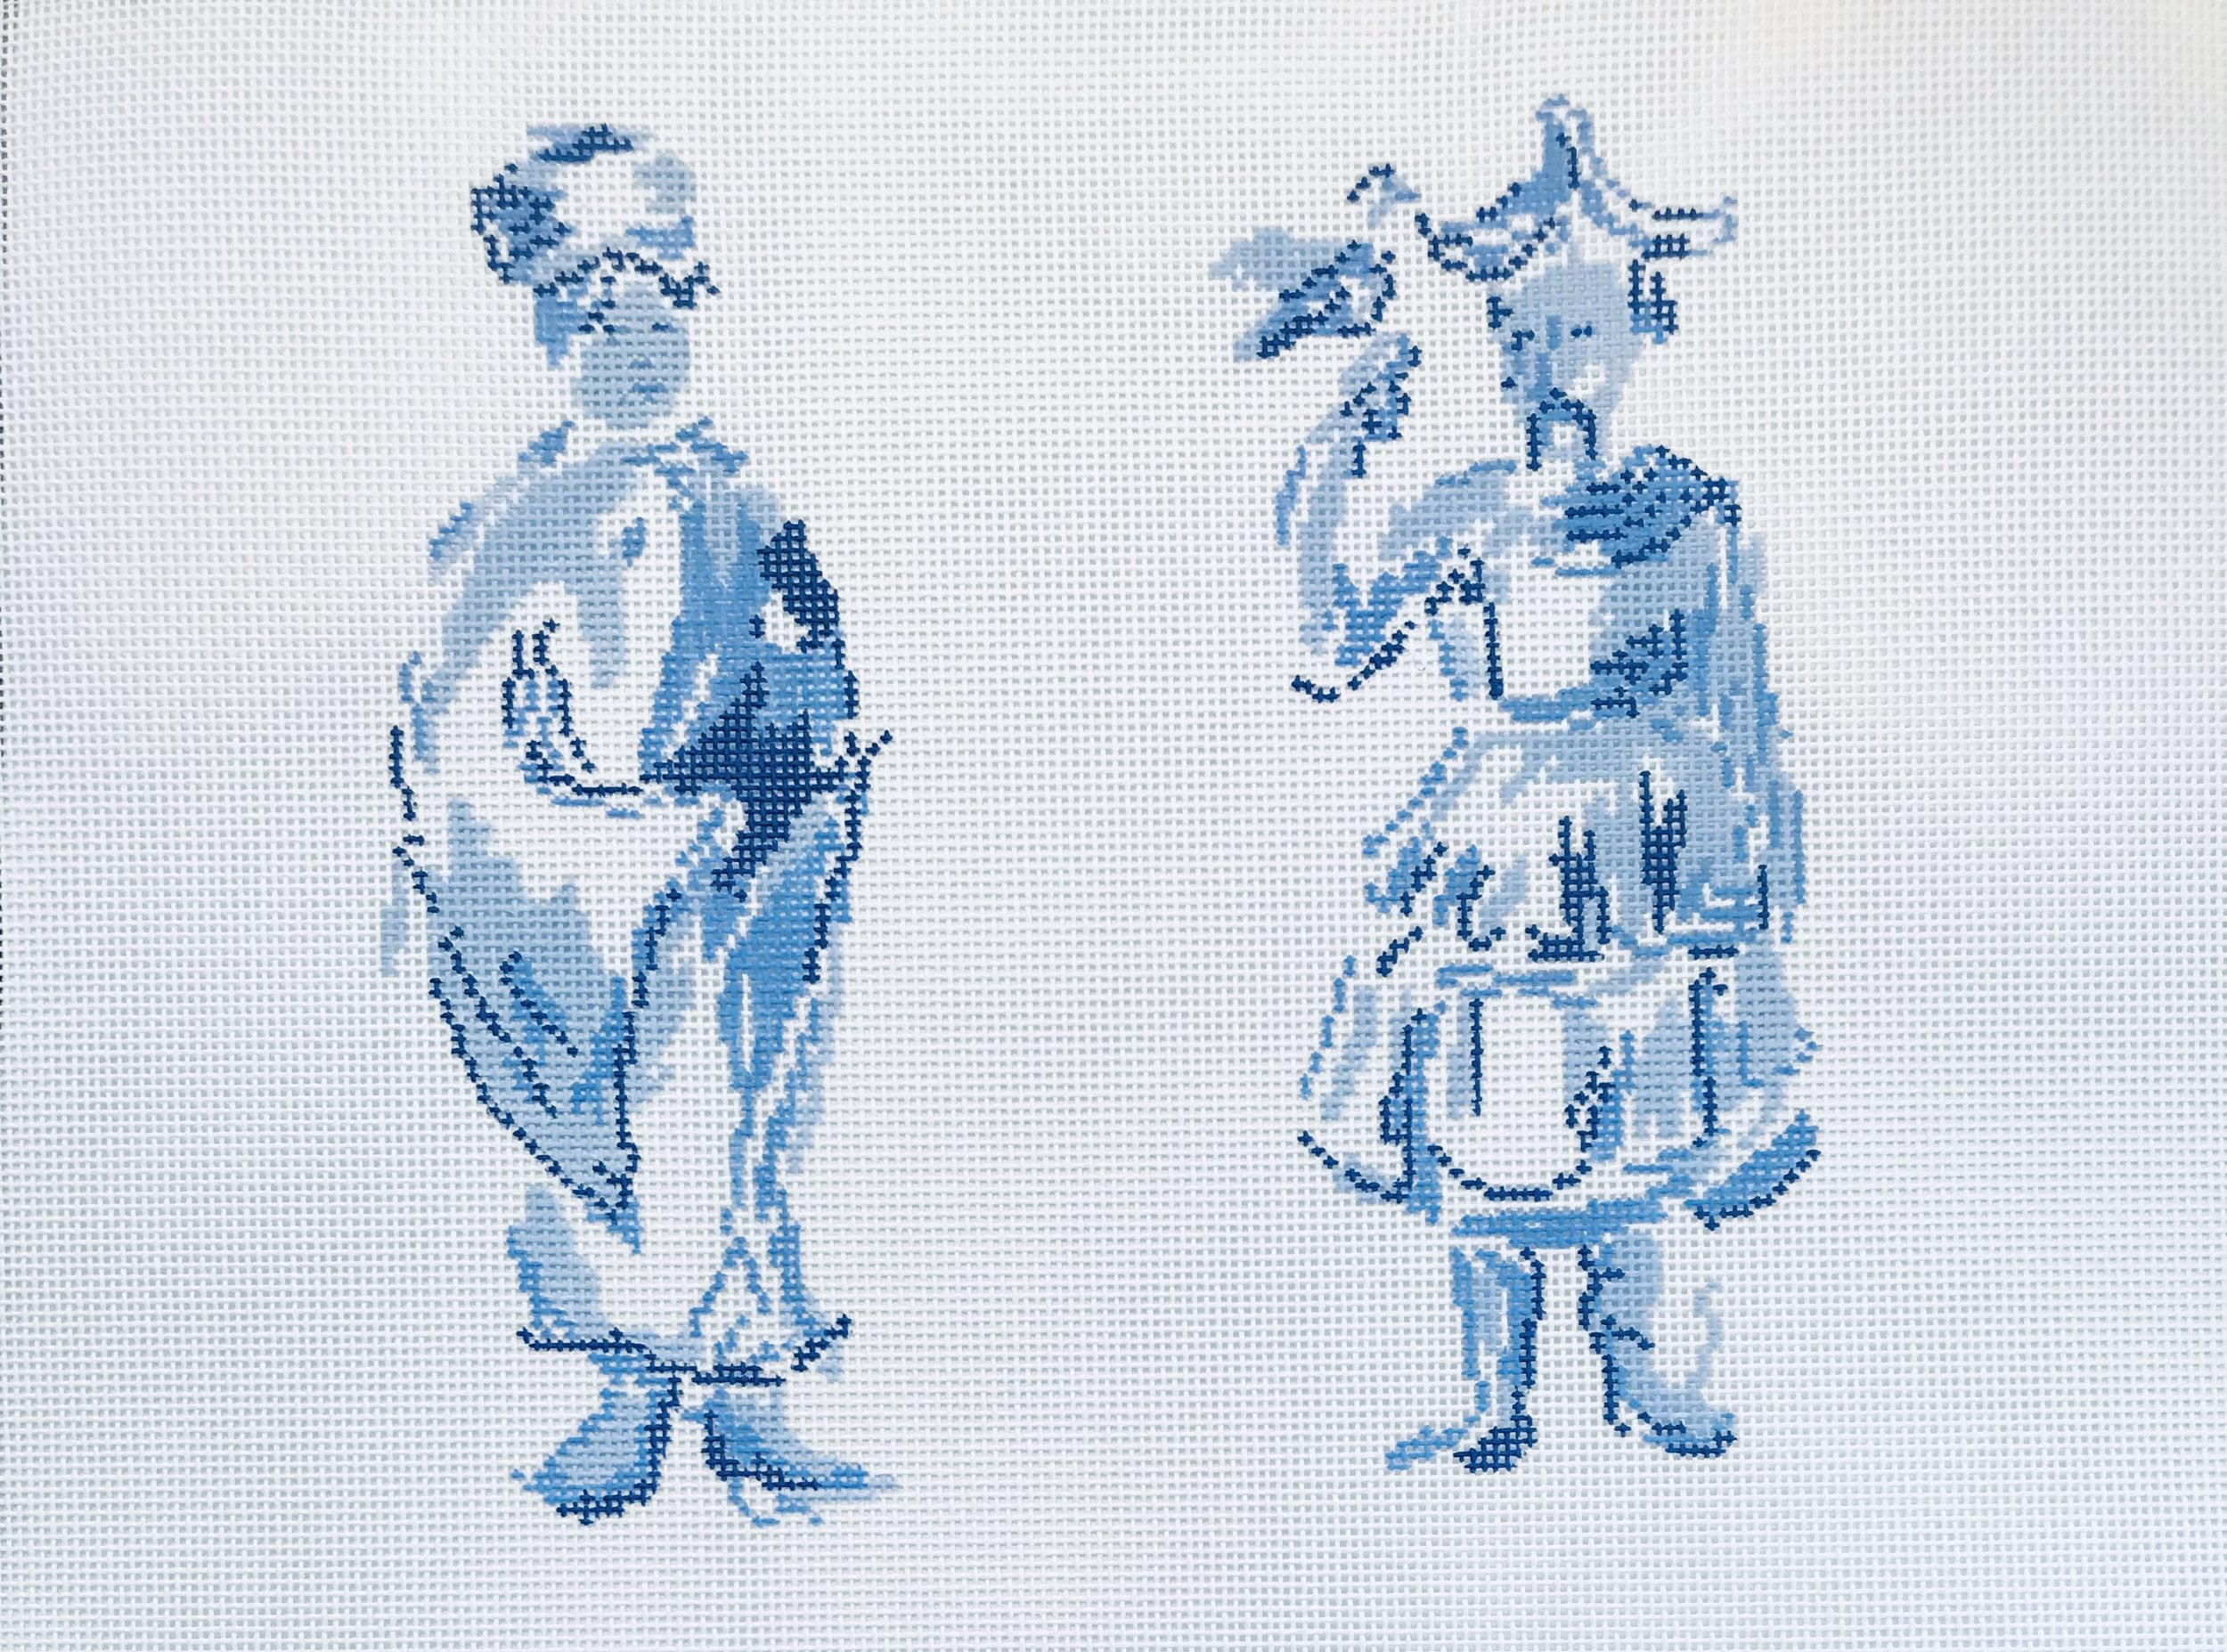 "Mandarin Woman & Man DG-2I   7"" x 7"" on 18 mesh"